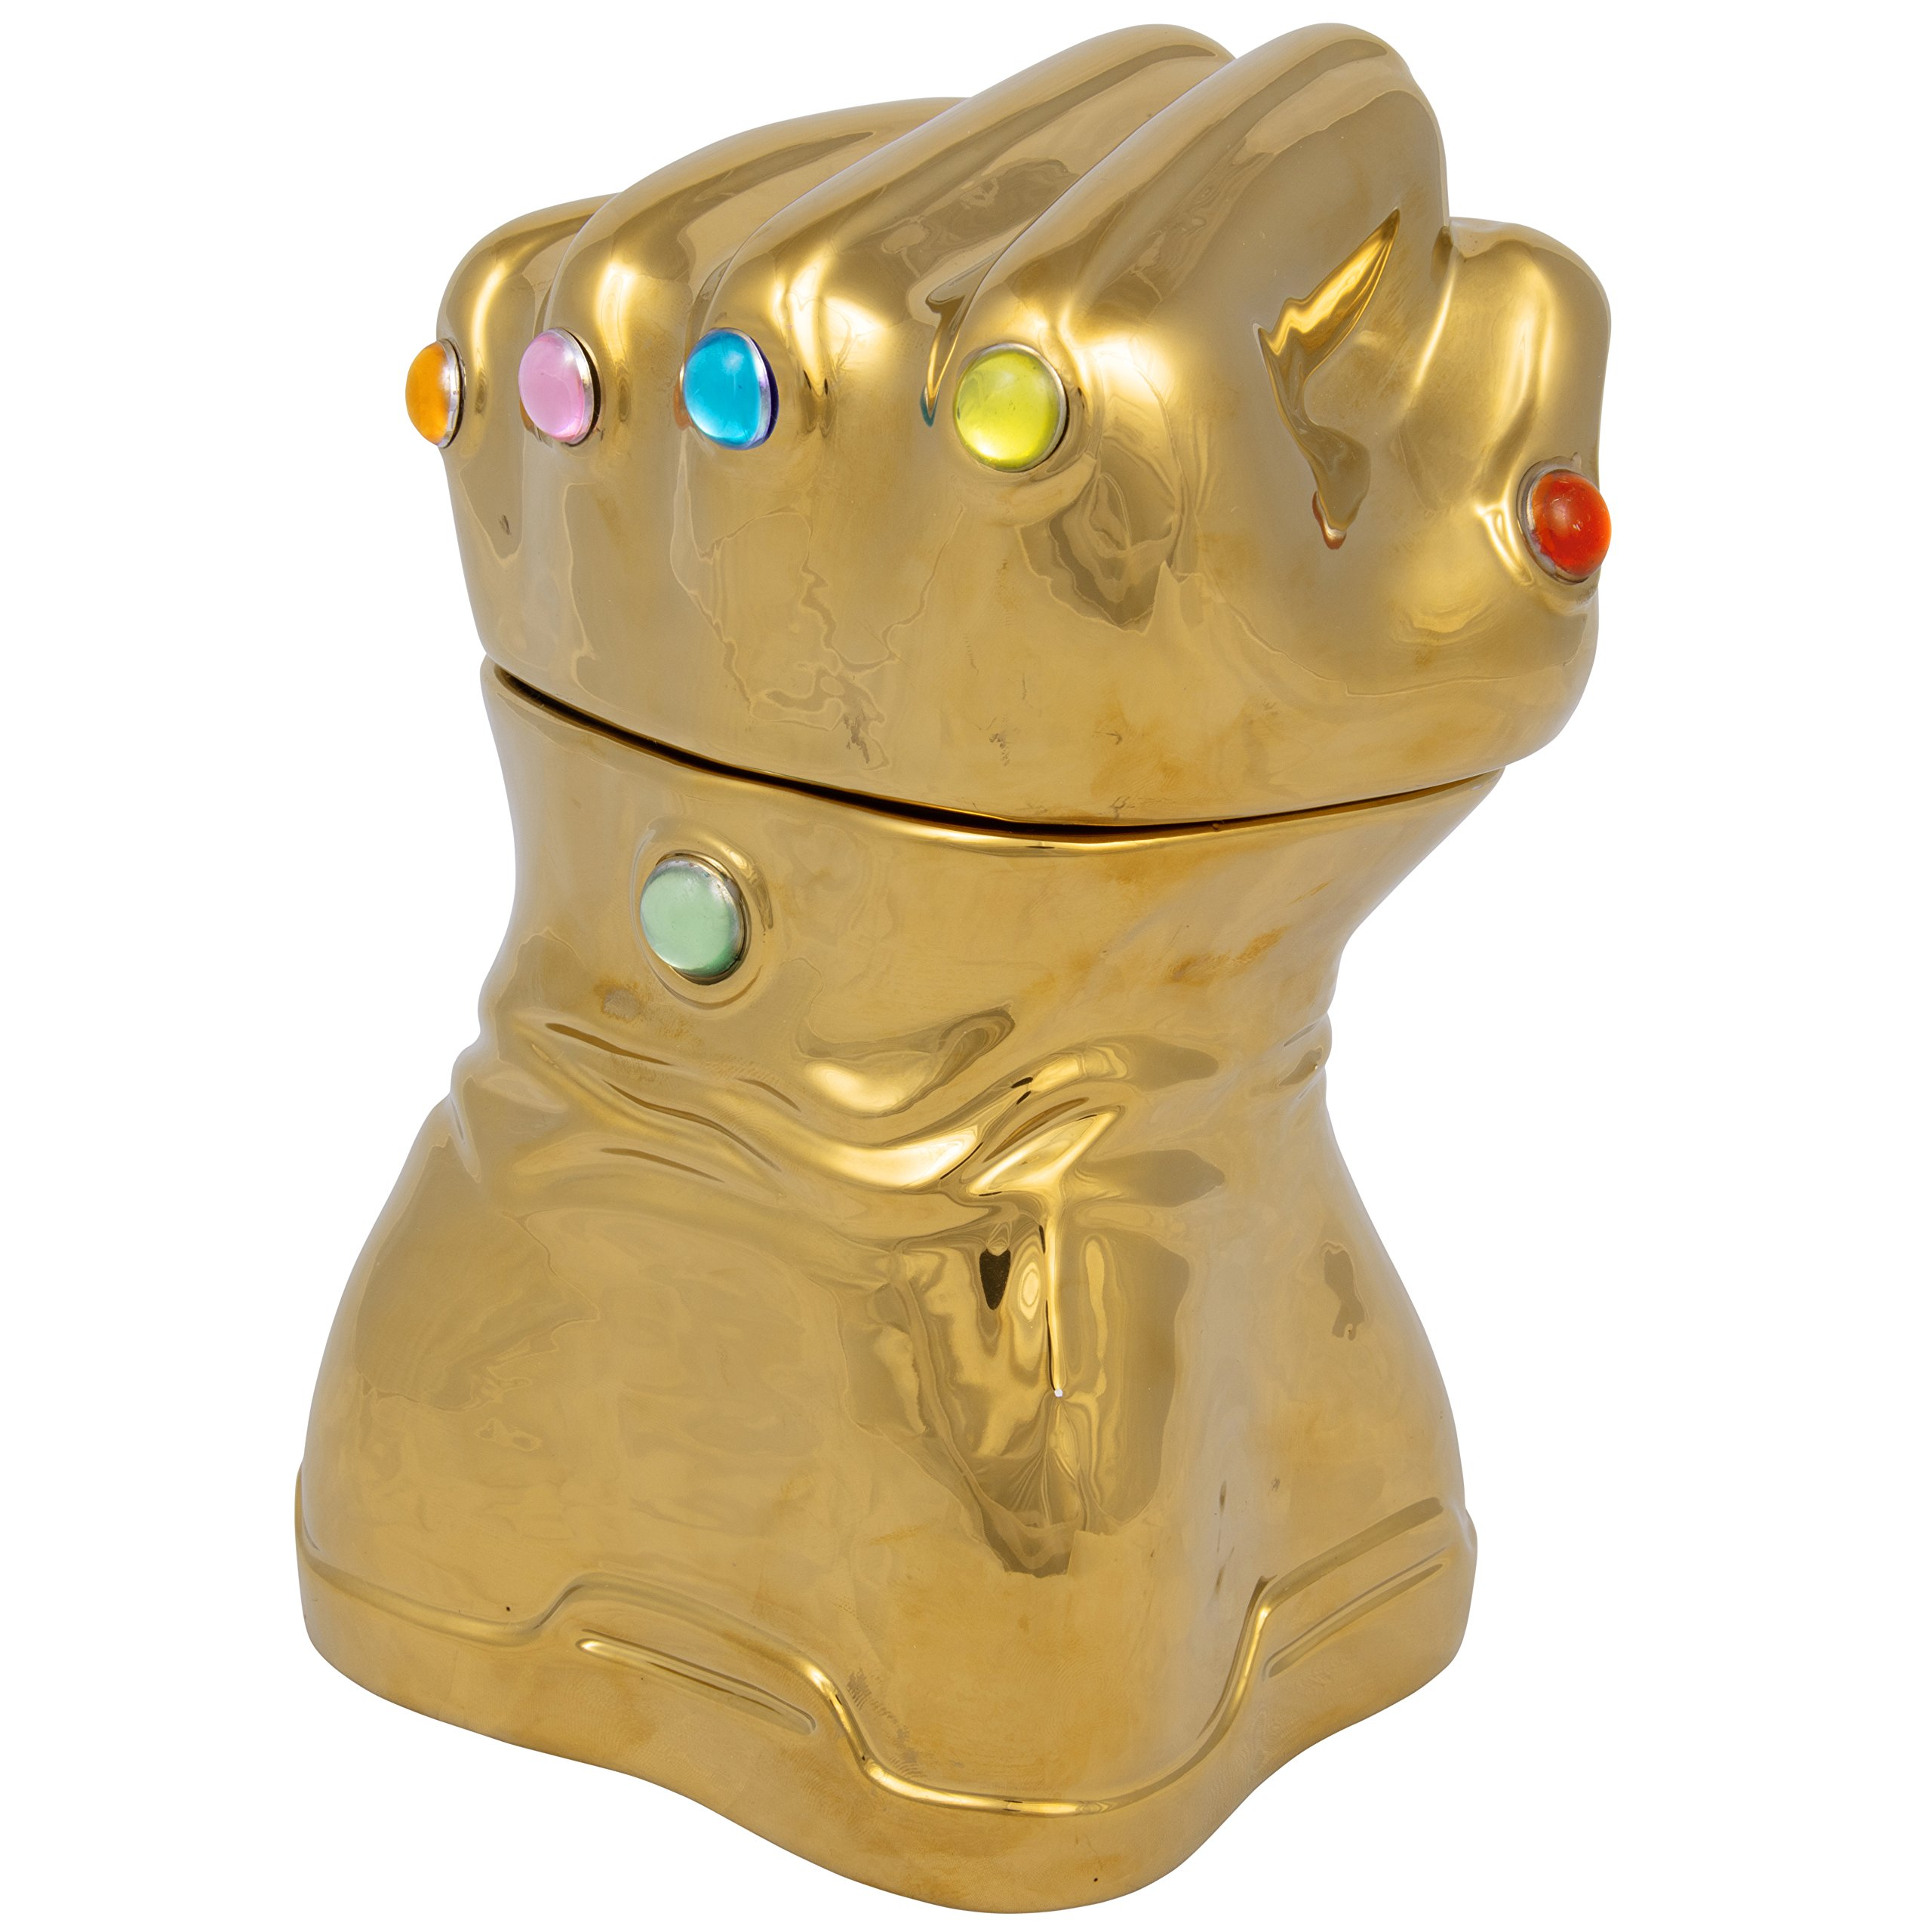 Thanos Infinity Gauntlet Cookie Jar - Gold with Infinity Stone Accents - Ceramic - 9 Inches Tall